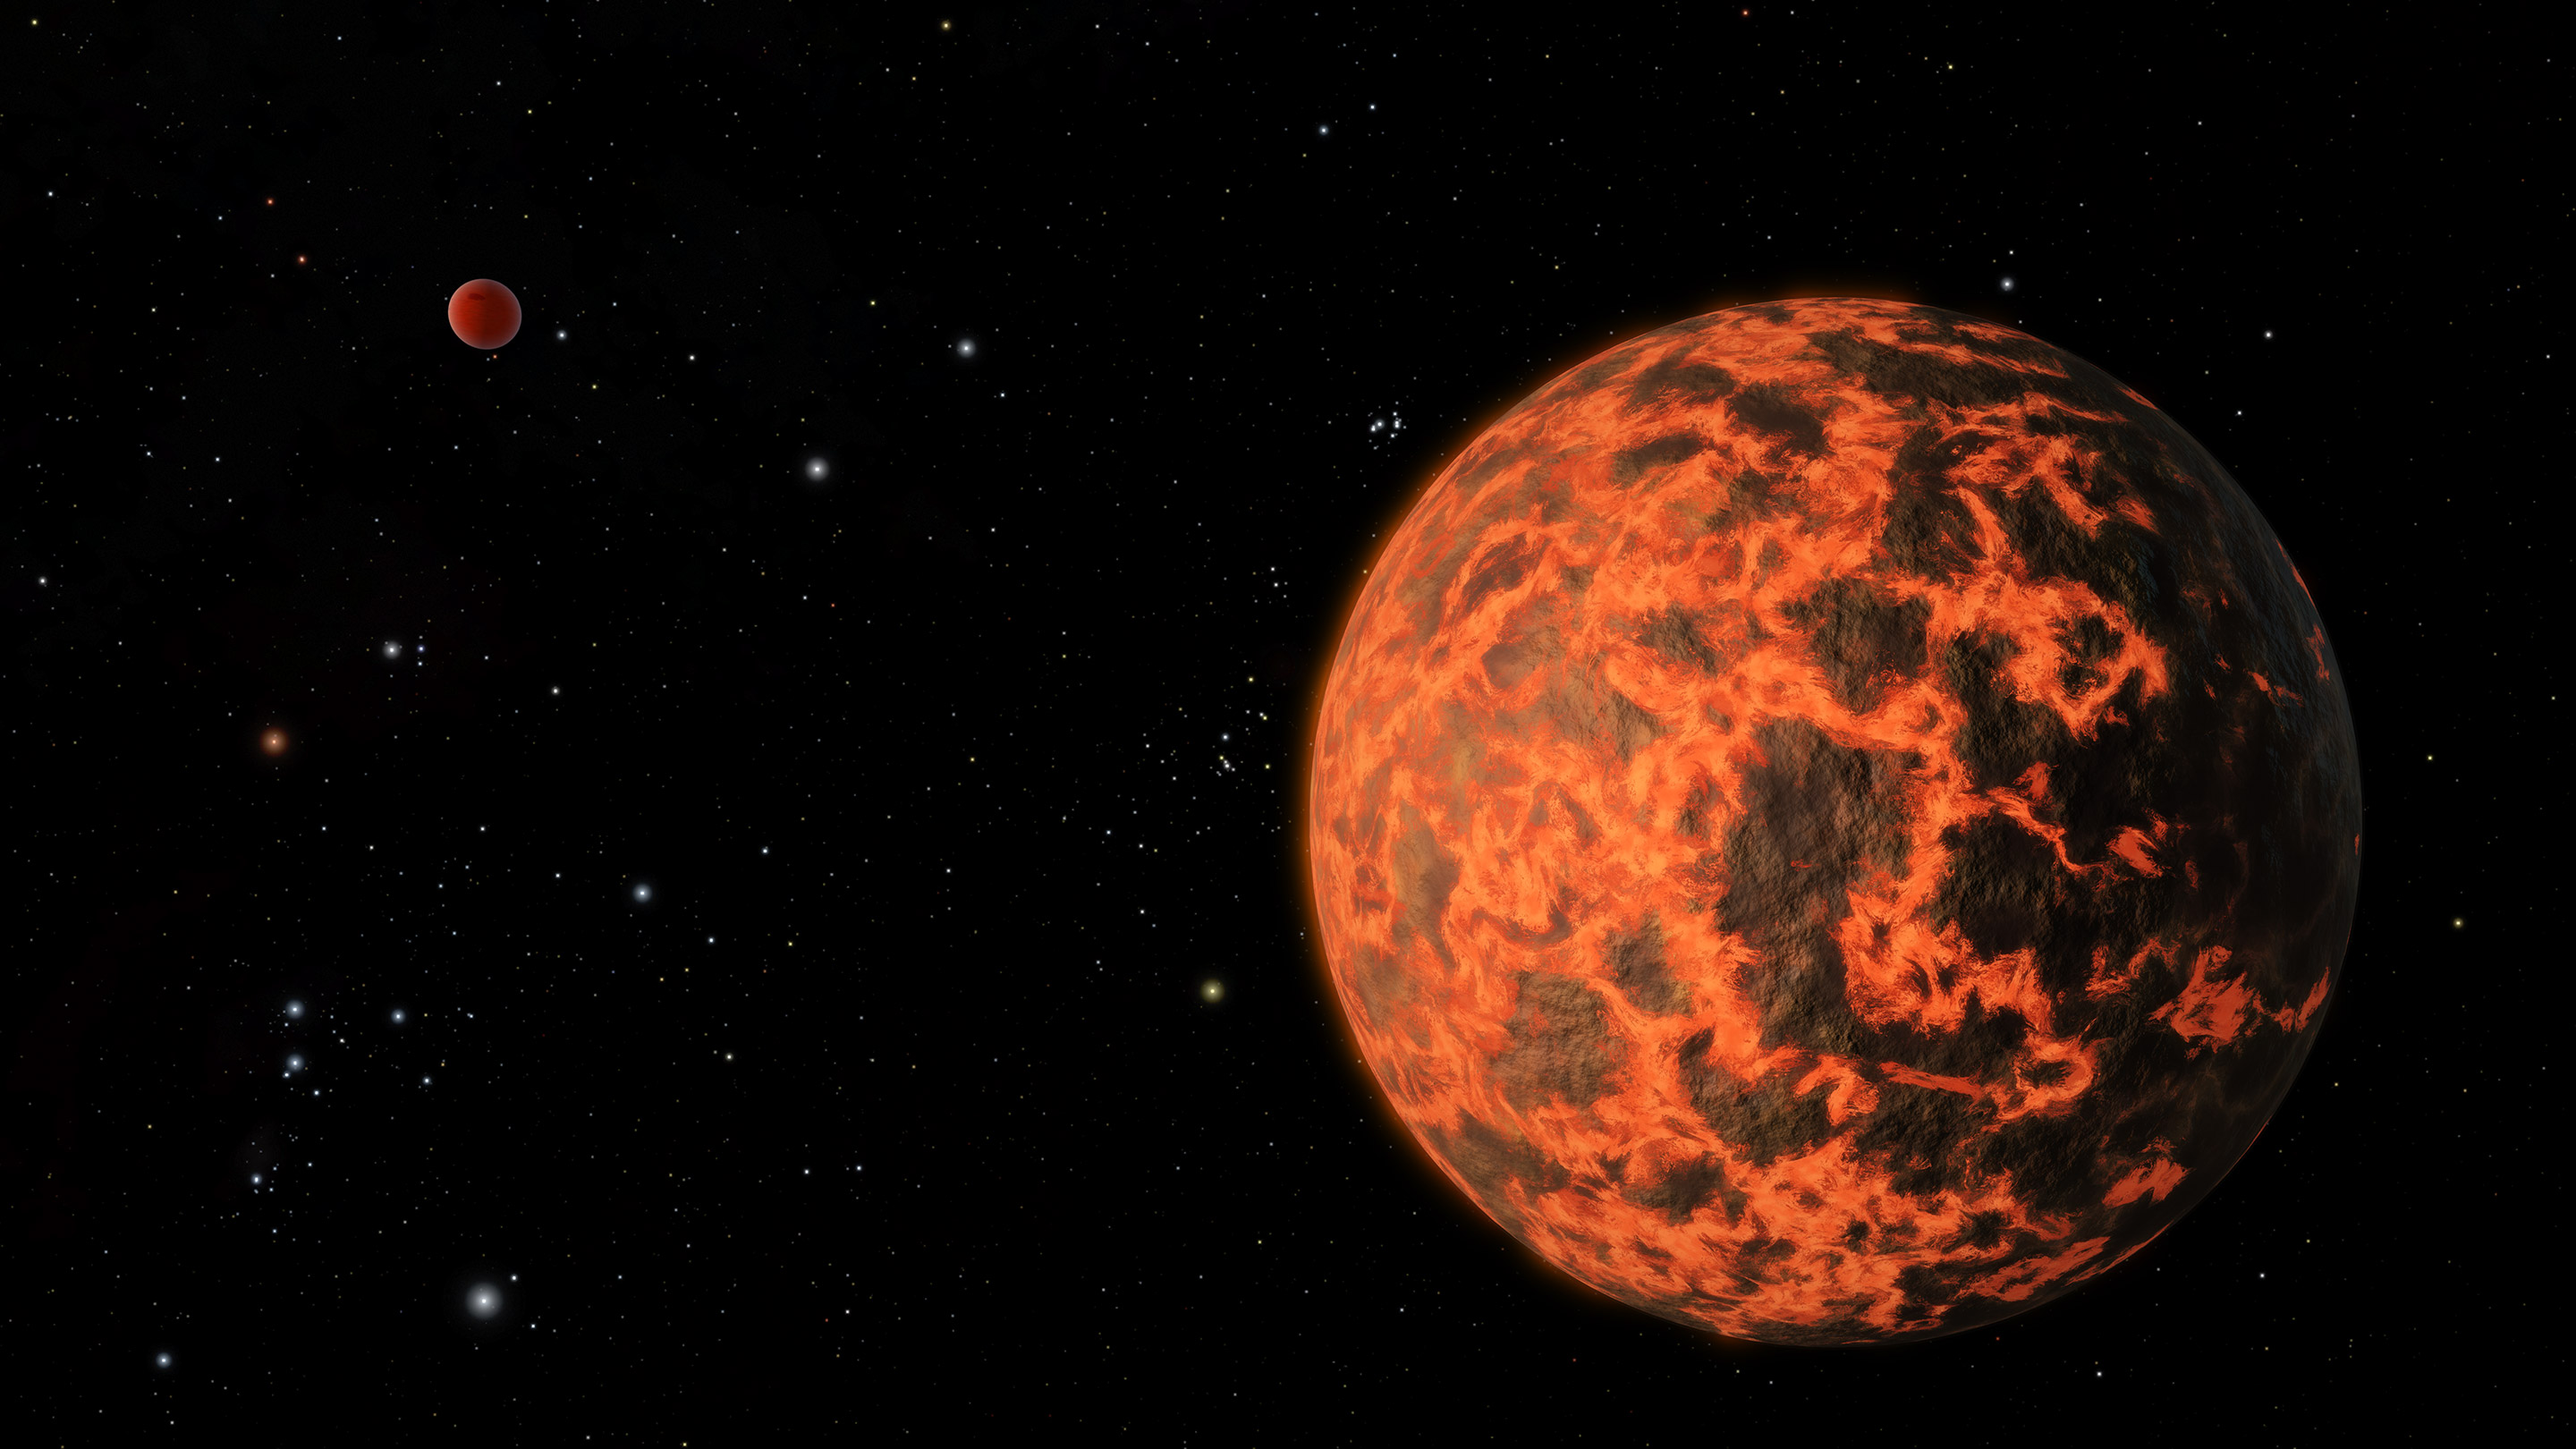 Astronomers using the Spitzer Space Telescope have detected an alien world just two-thirds the size of Earth. The exoplanet candidate, known as UCF-1.01, orbits a star called GJ 436, which is located 33 light-years away. Image: NASA/JPL-Caltech/R. Hurt (SSC)